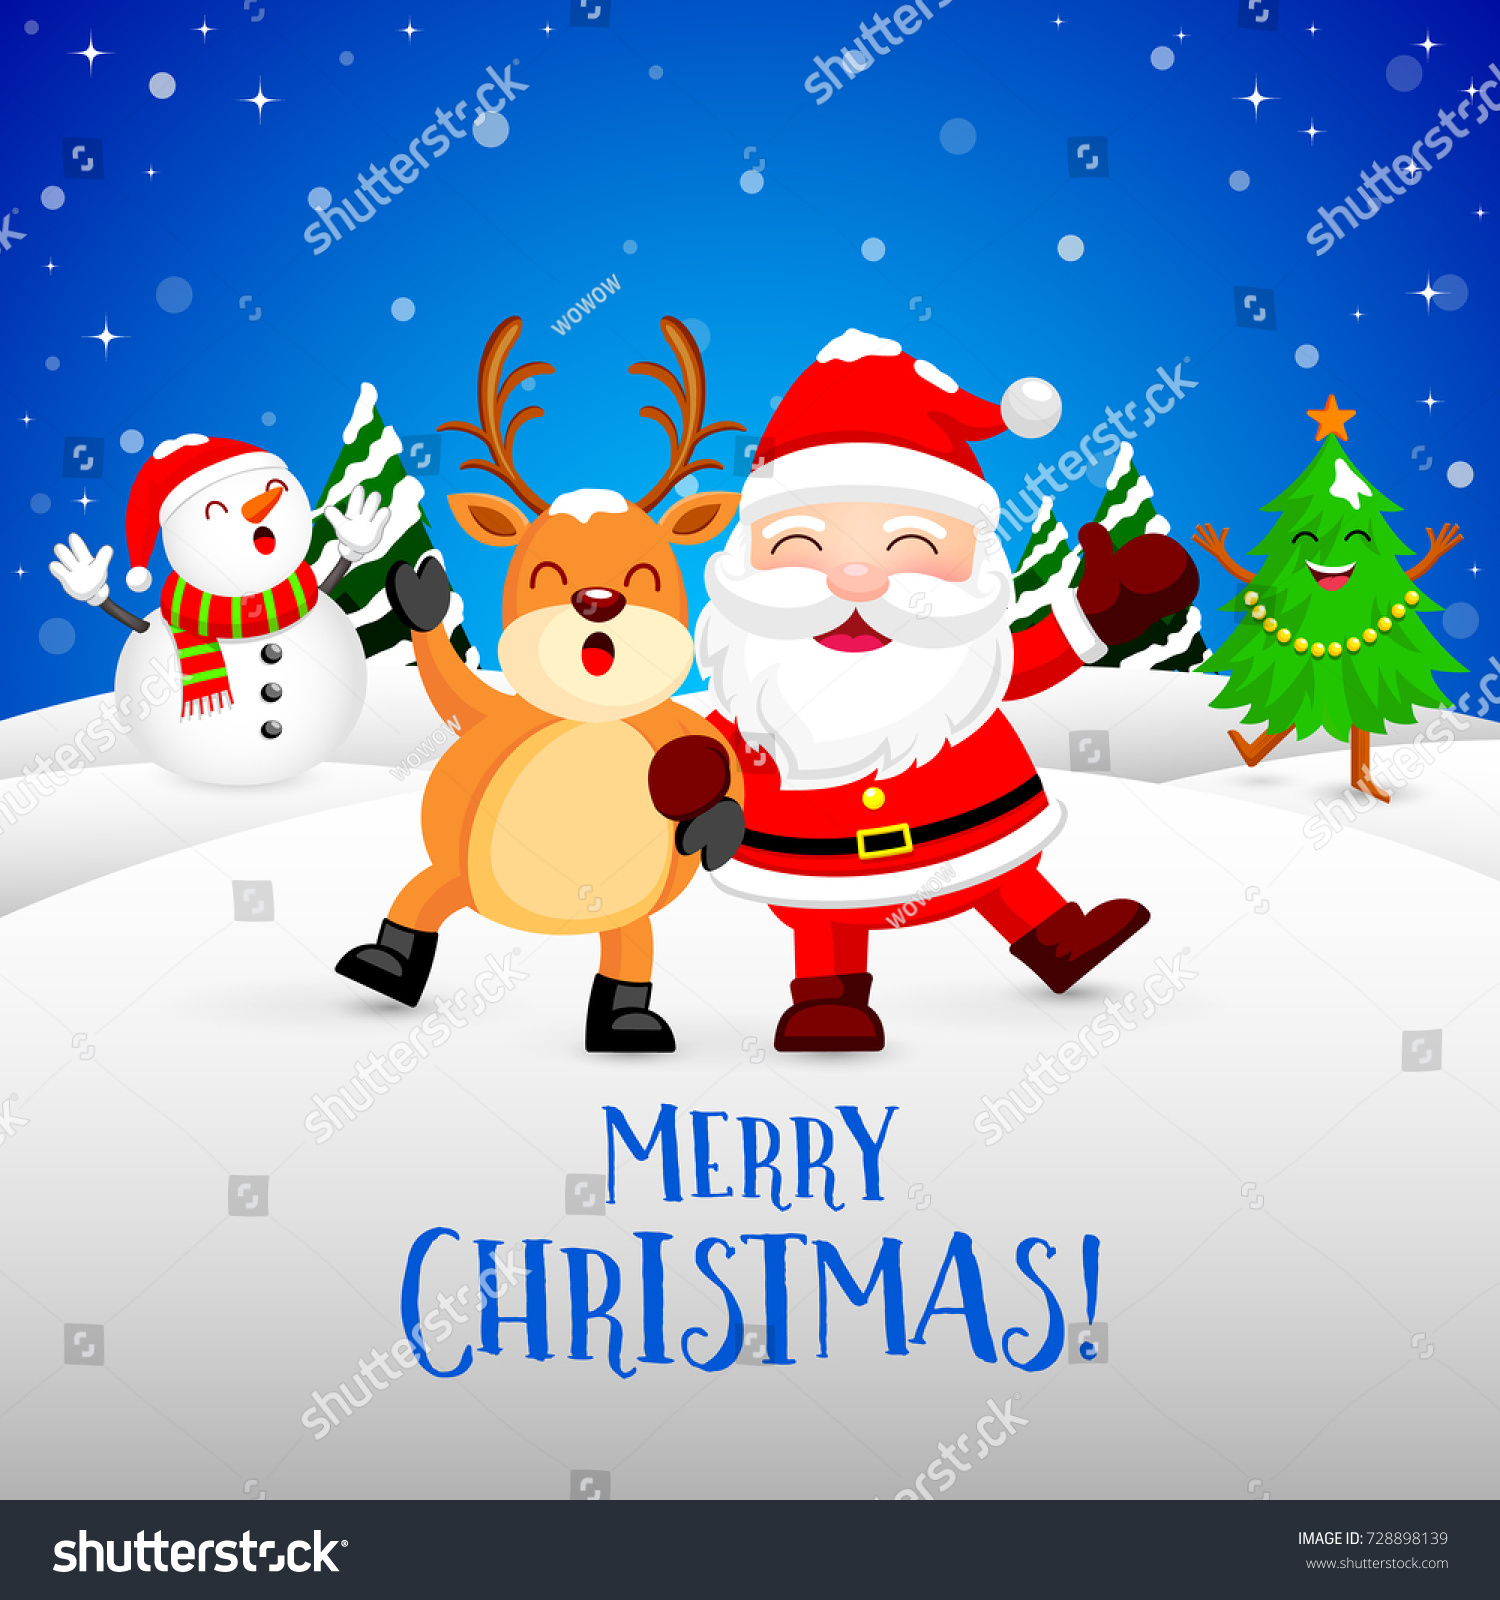 Funny Christmas Images Part - 36: Funny Christmas Characters Design On Snow, Santa Claus, Snowman, Xmas Tree  And Reindeer